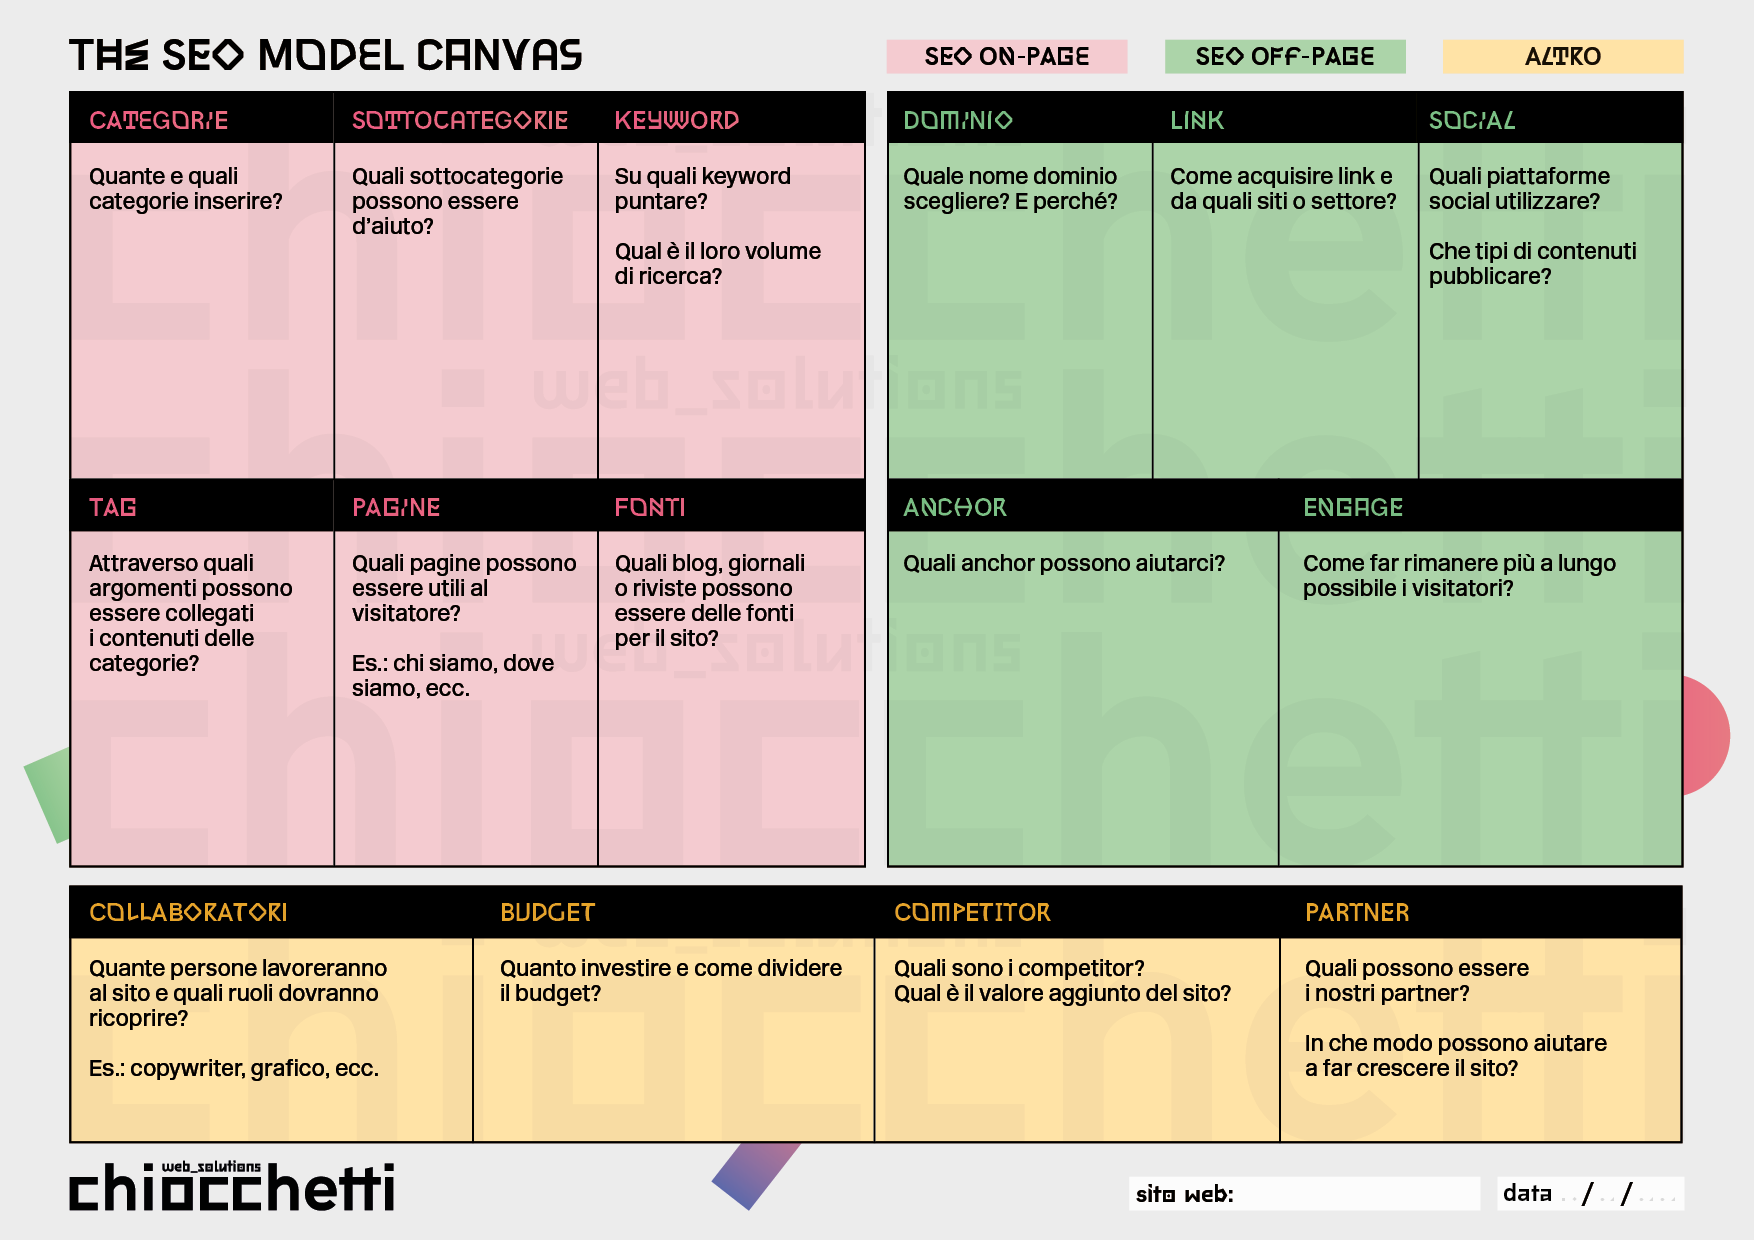 SEO Model Canvas